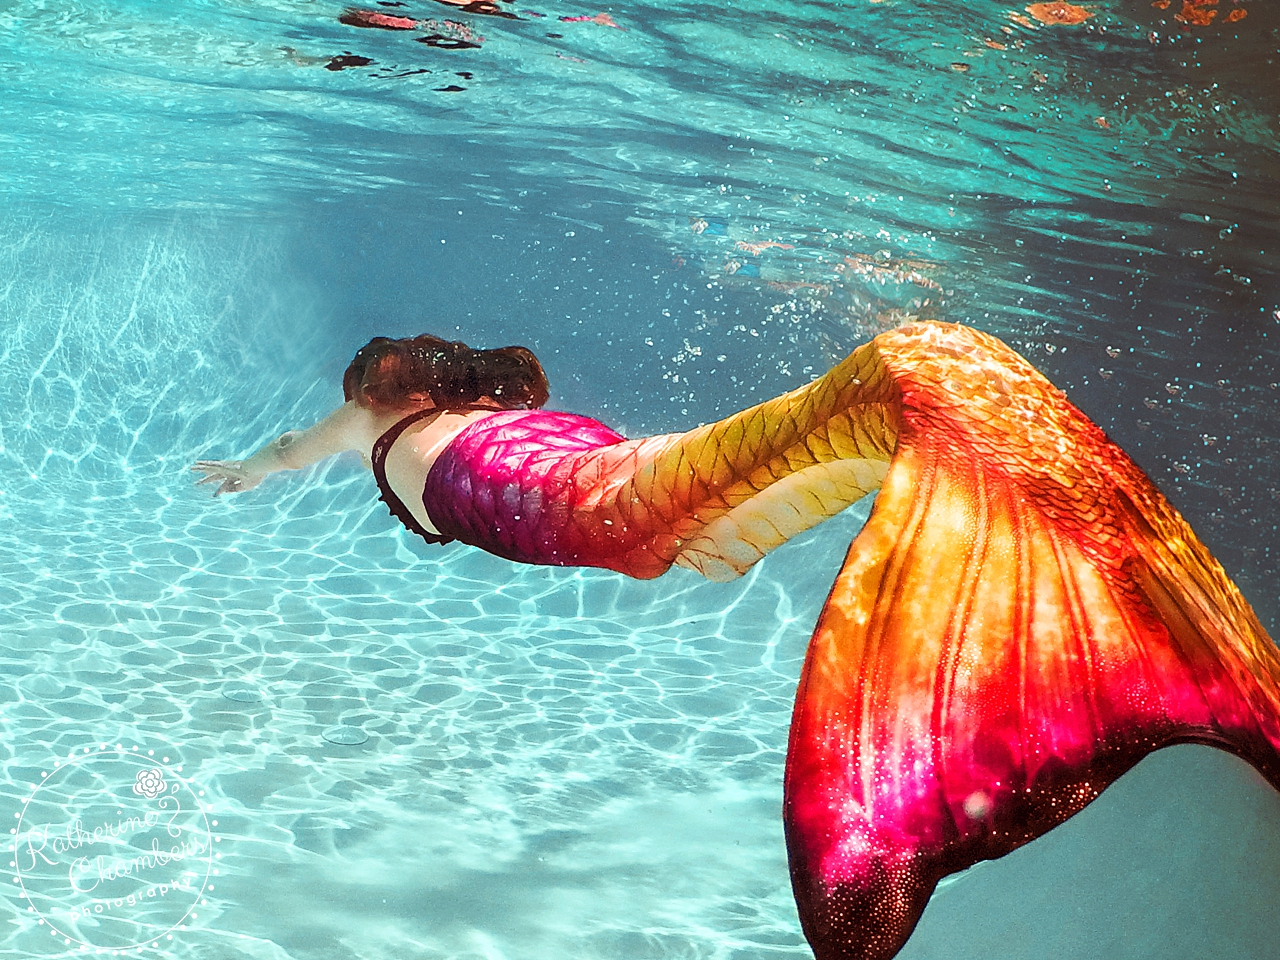 Fin Fun Mermaid Tail | Underwater Photography